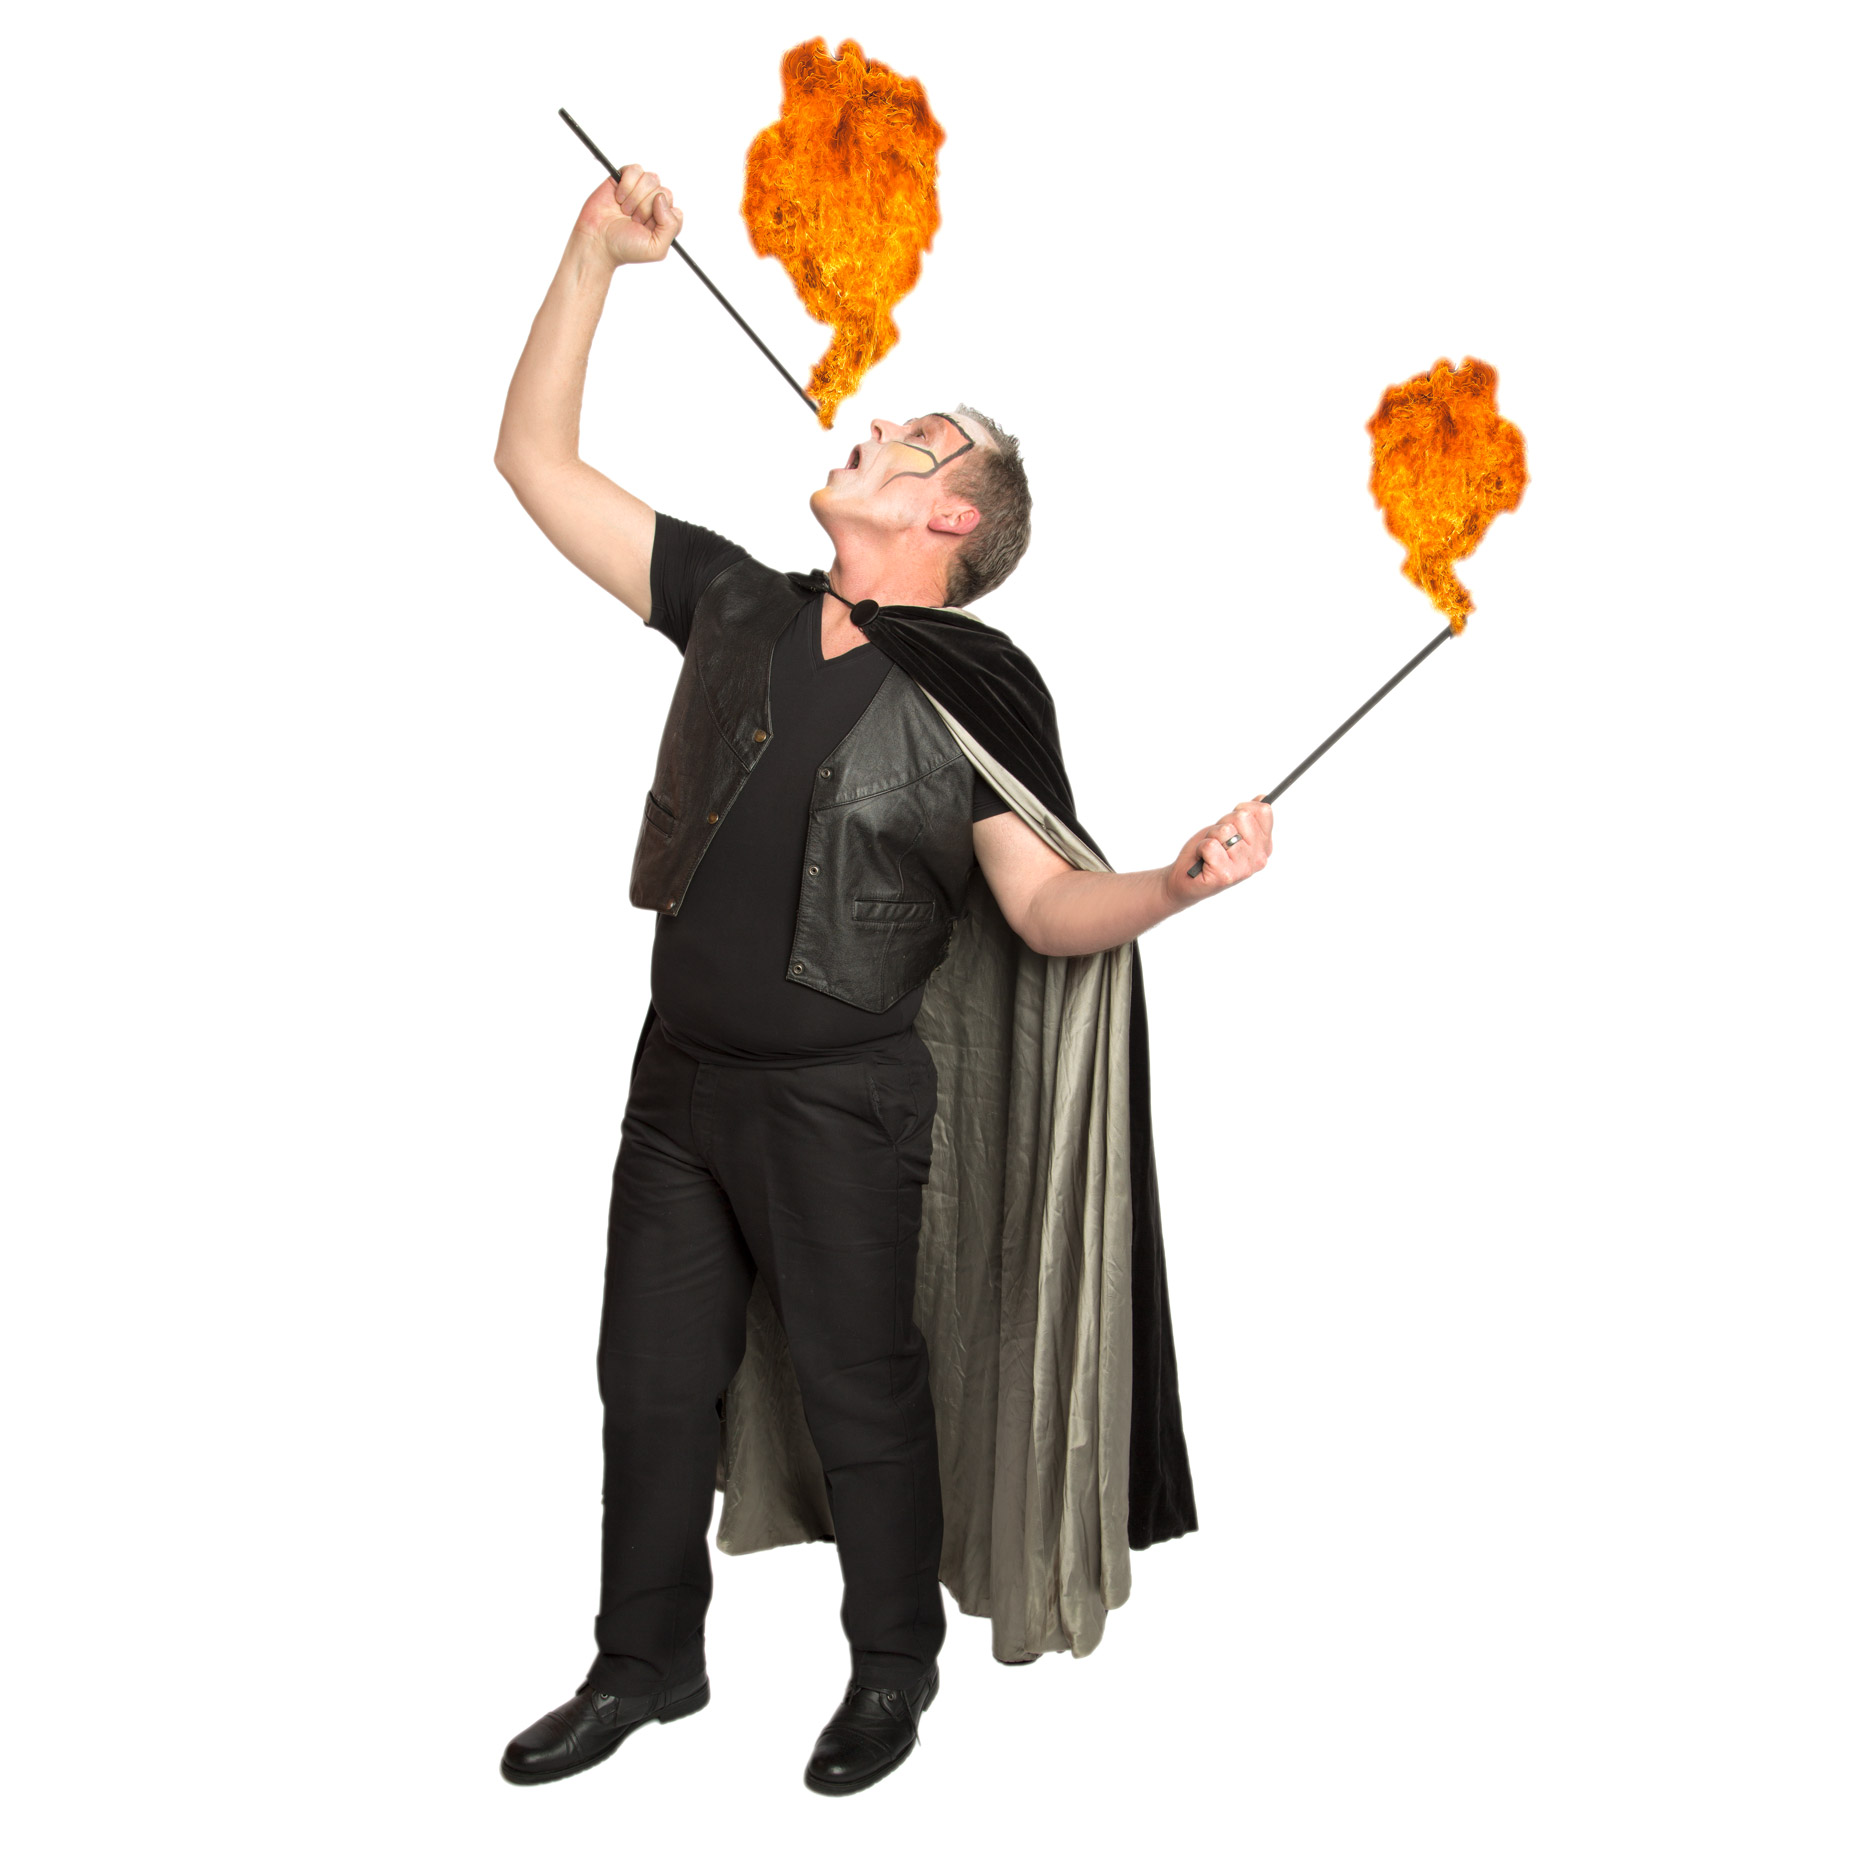 Circus Fire Eater